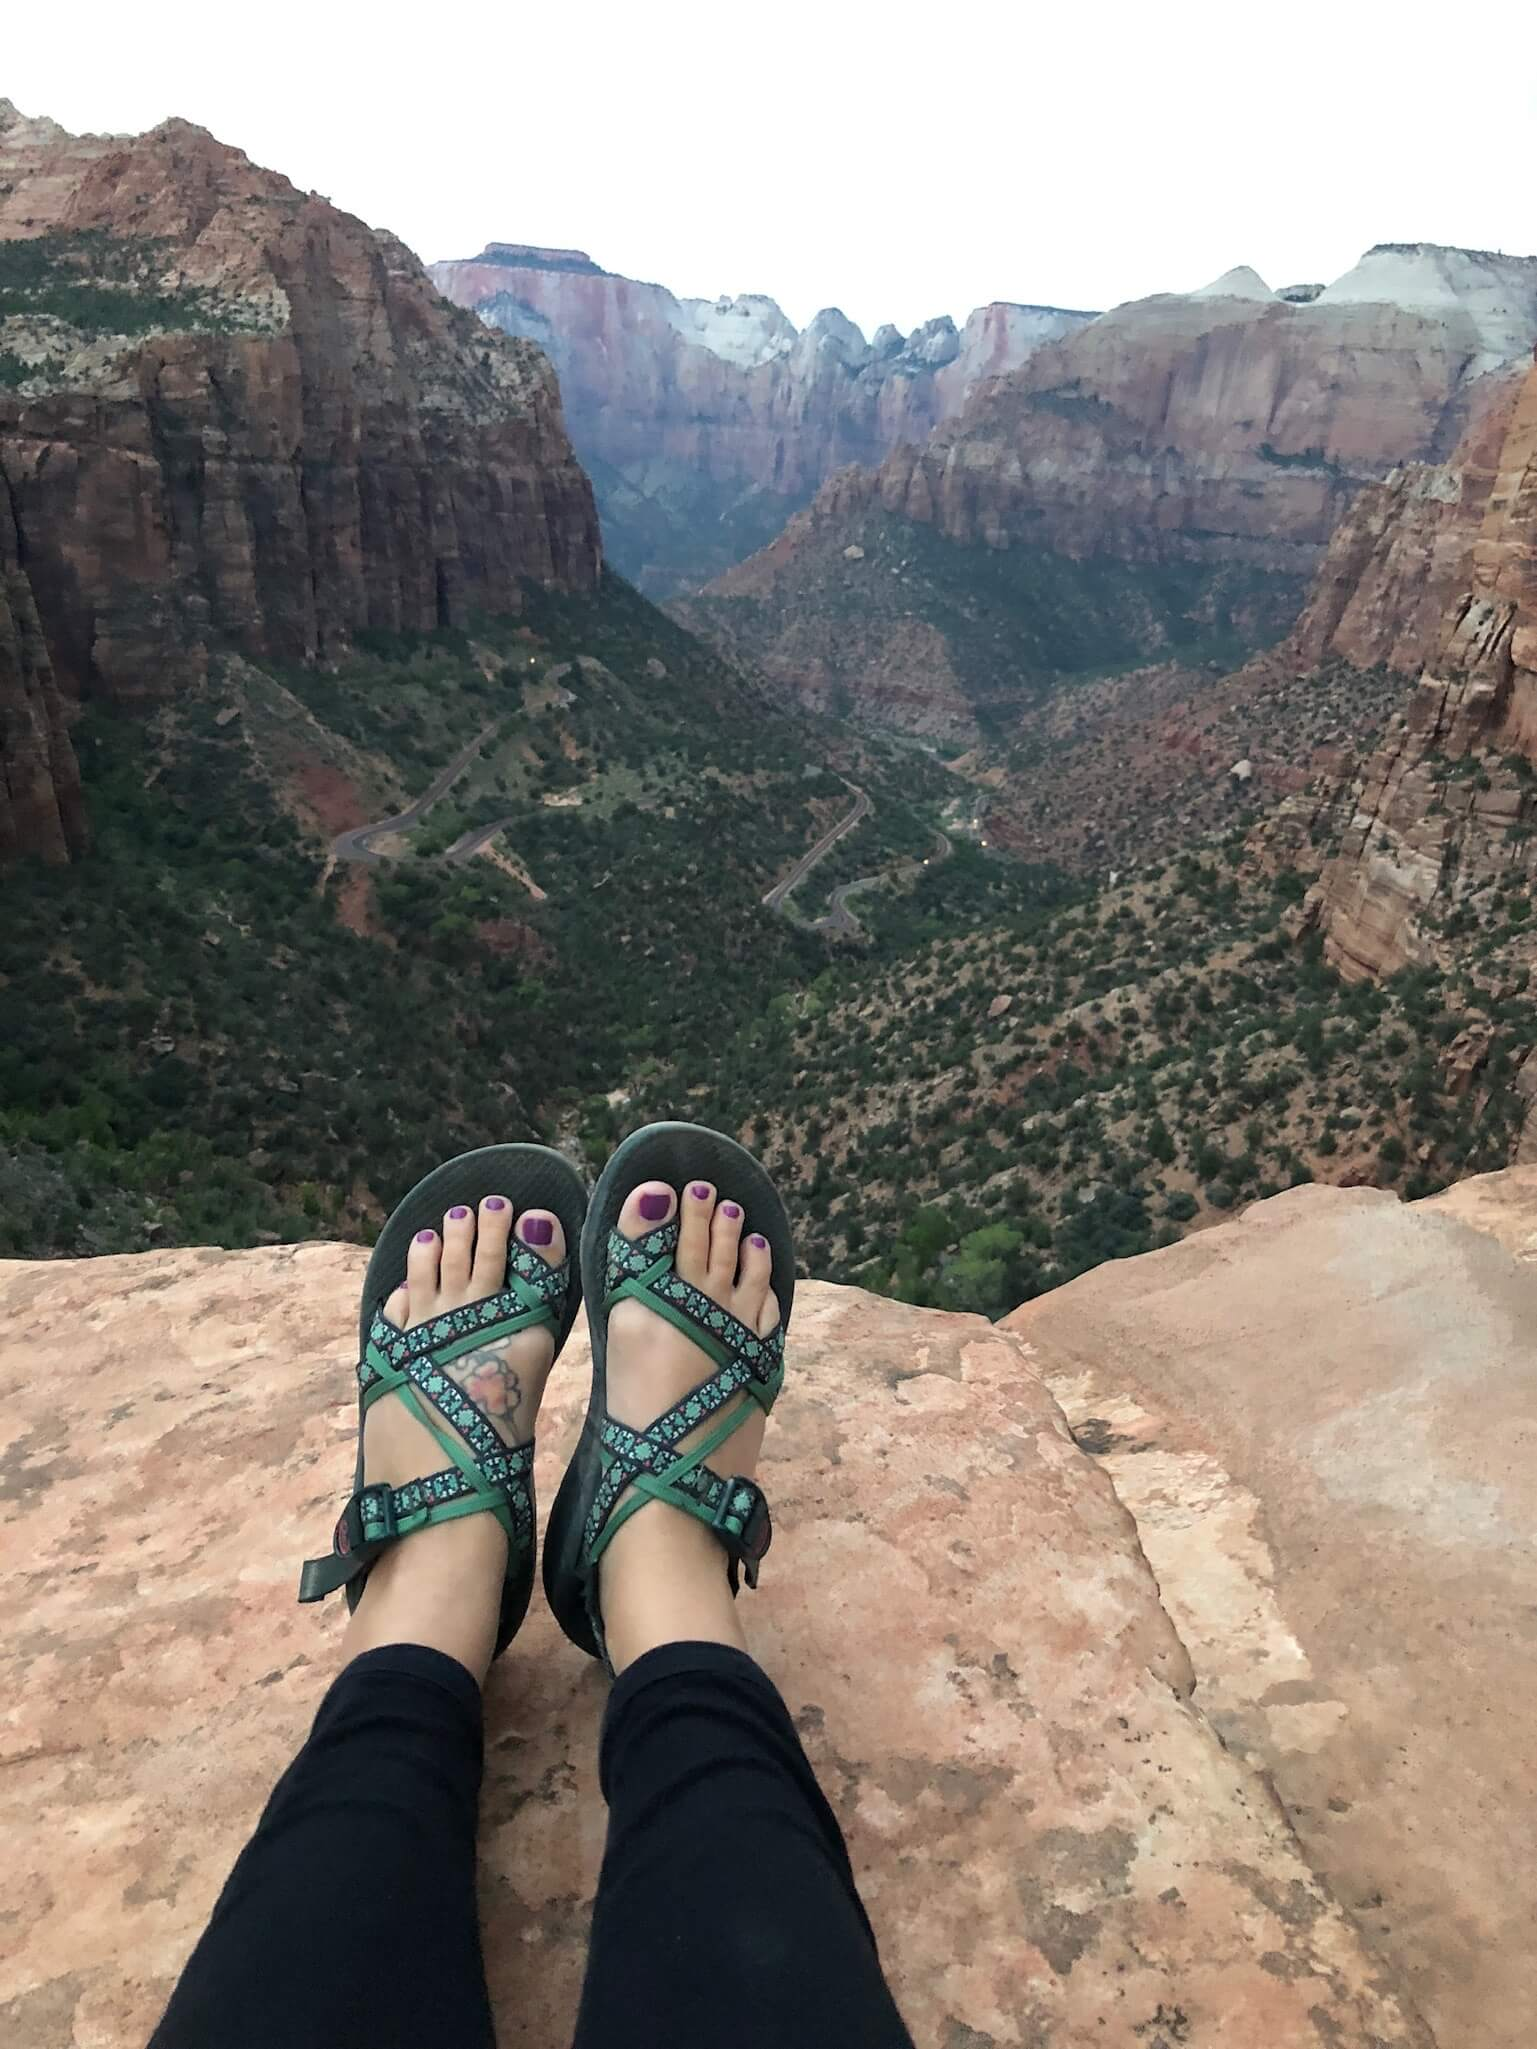 - -I got my first pair of Chacos, and wear them EVERYWHERE